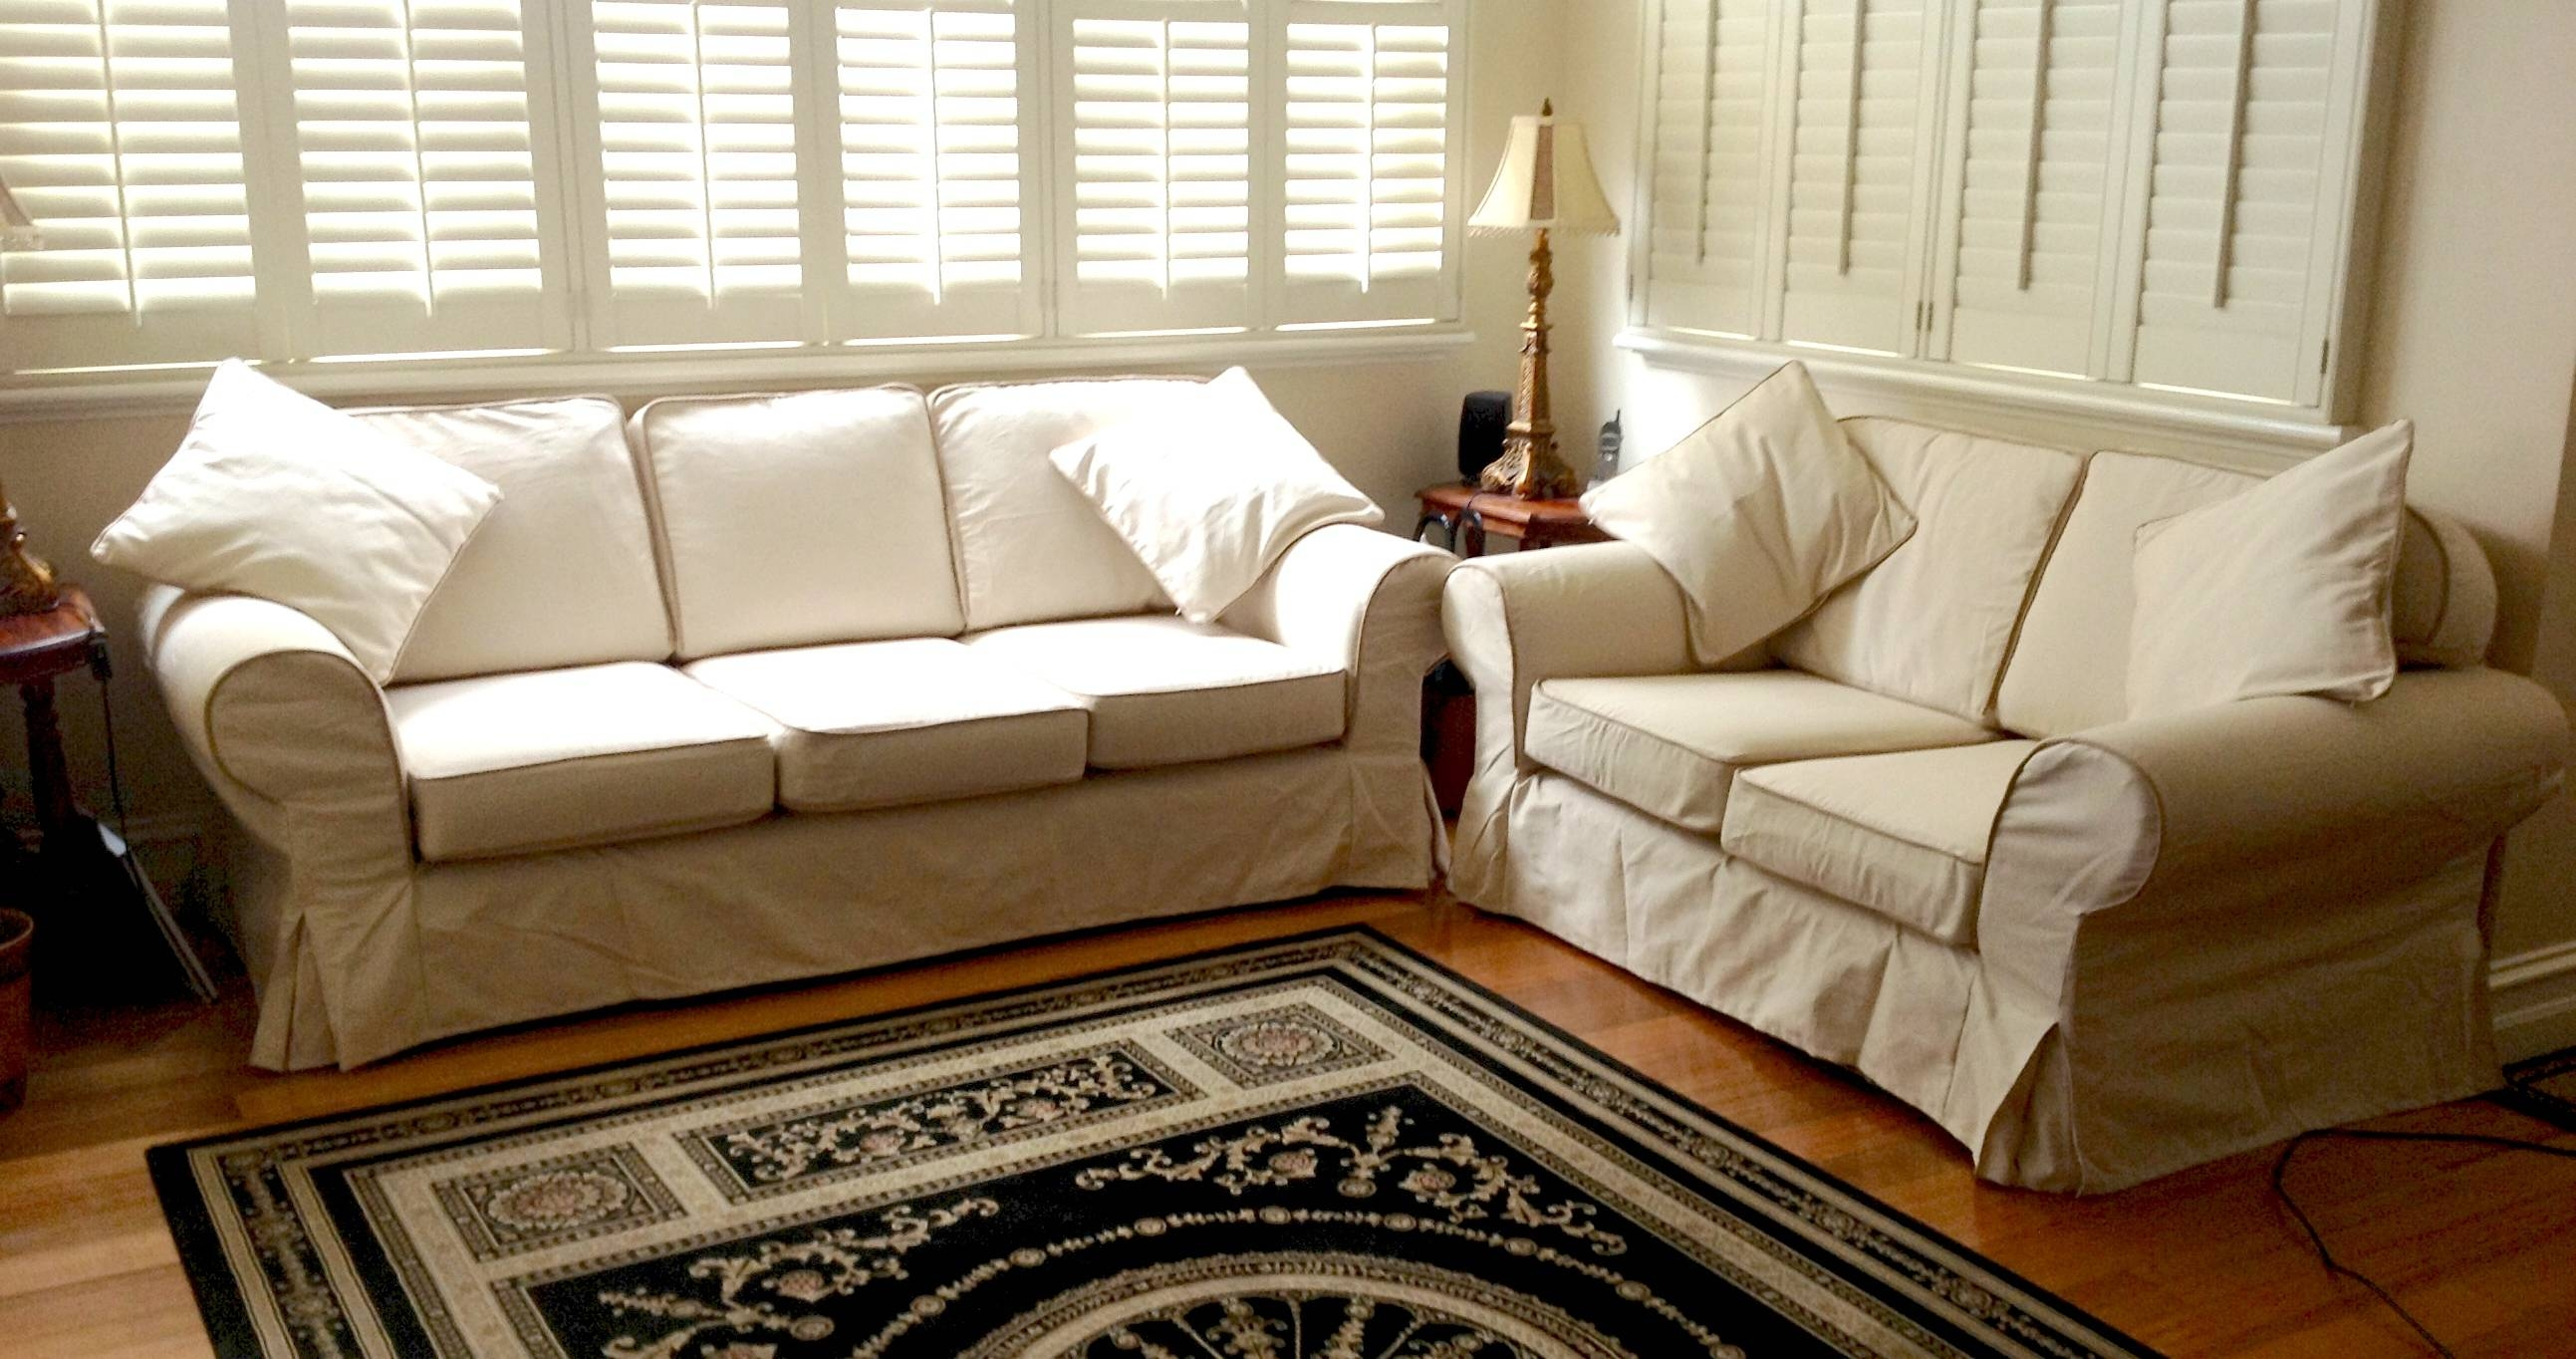 Custom Slipcovers And Couch Cover For Any Sofa Online with regard to Covers for Sofas (Image 2 of 30)